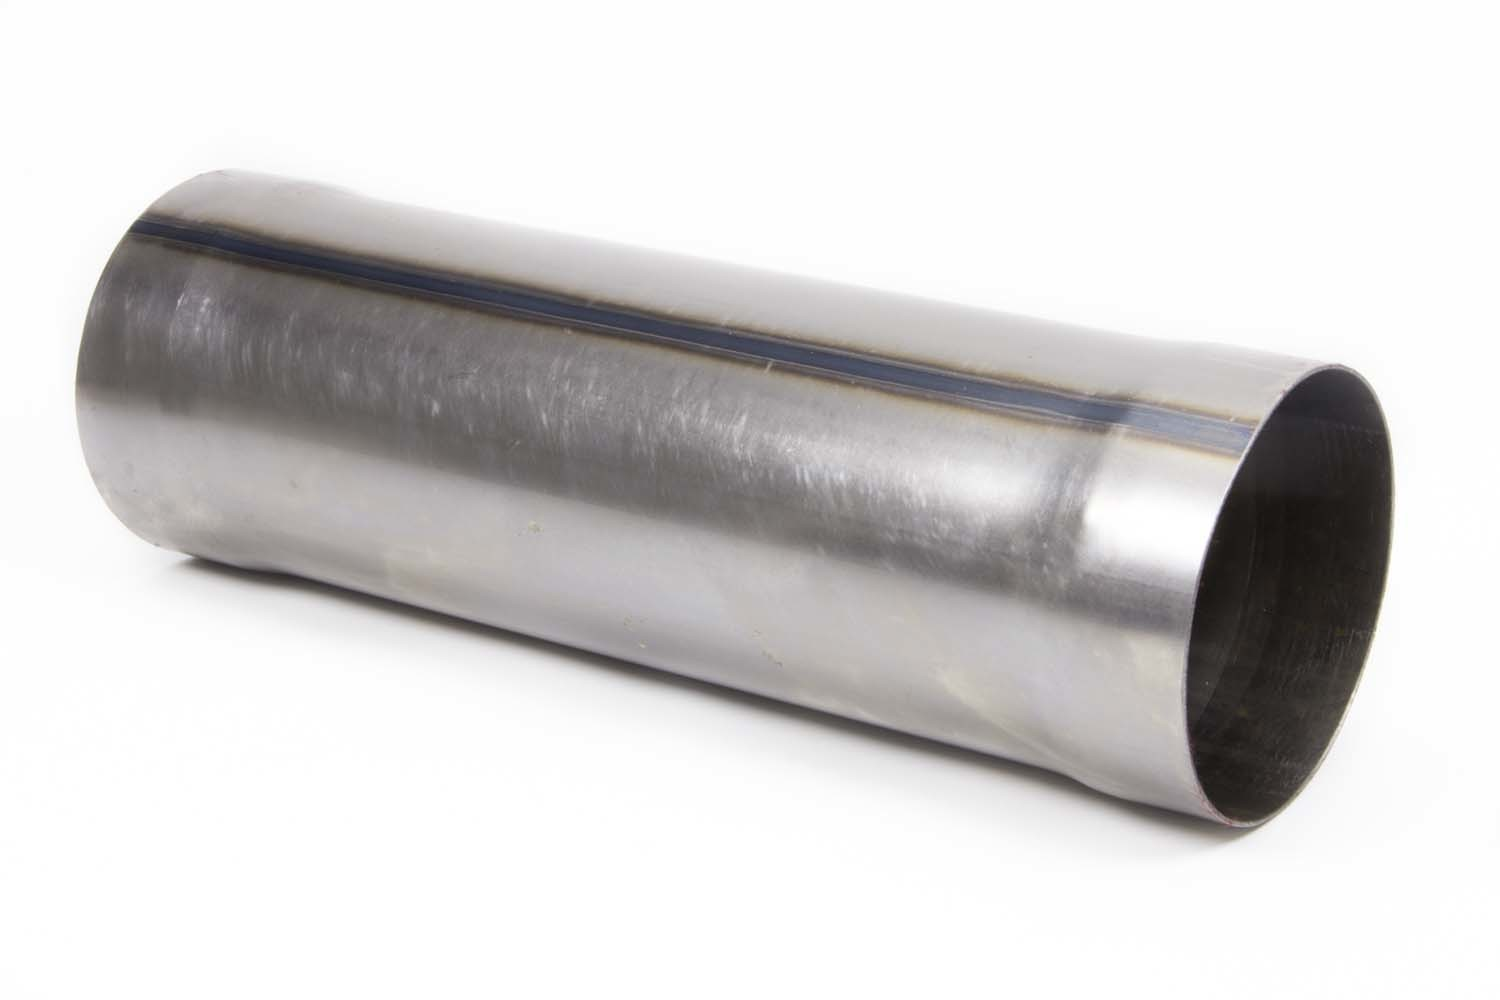 Howe H10031 Exhaust Pipe Extension, Straight, 5 in Diameter, 16 in Long, 1 End Expanded, Steel, Natural, Each